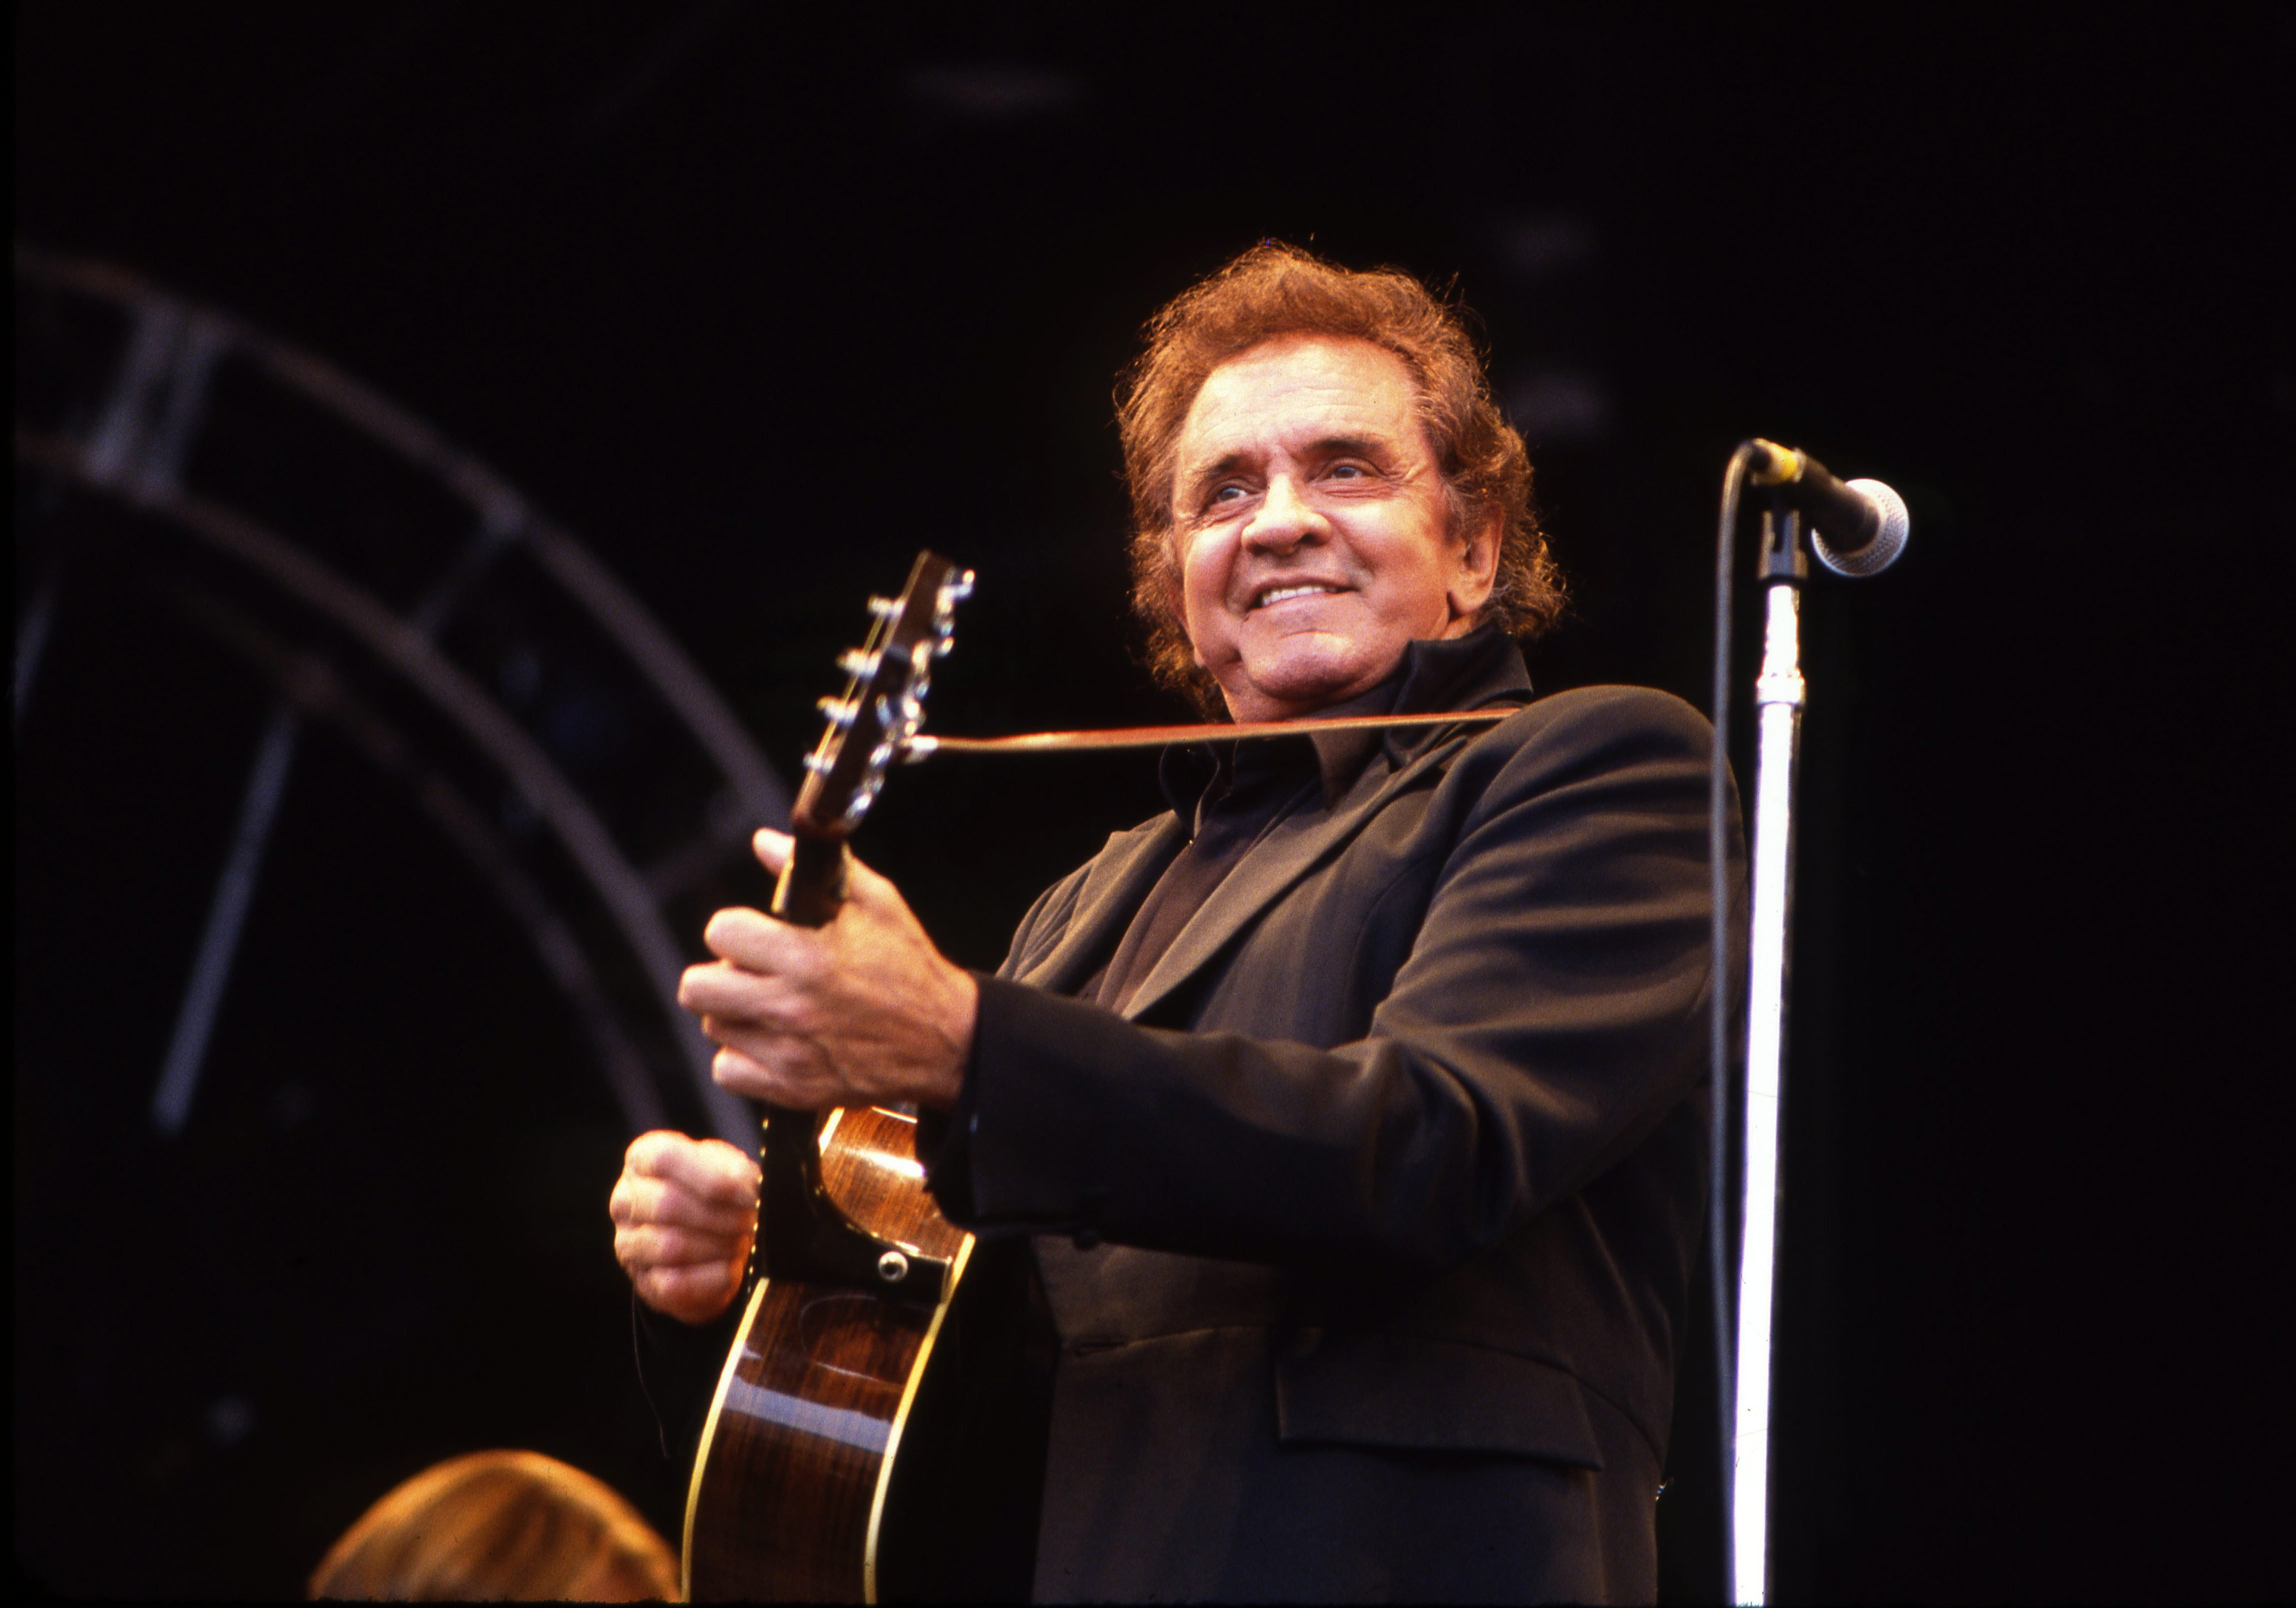 Johnny Cash performs at the Glastonbury Festival in 1994 | Photo: Getty Images